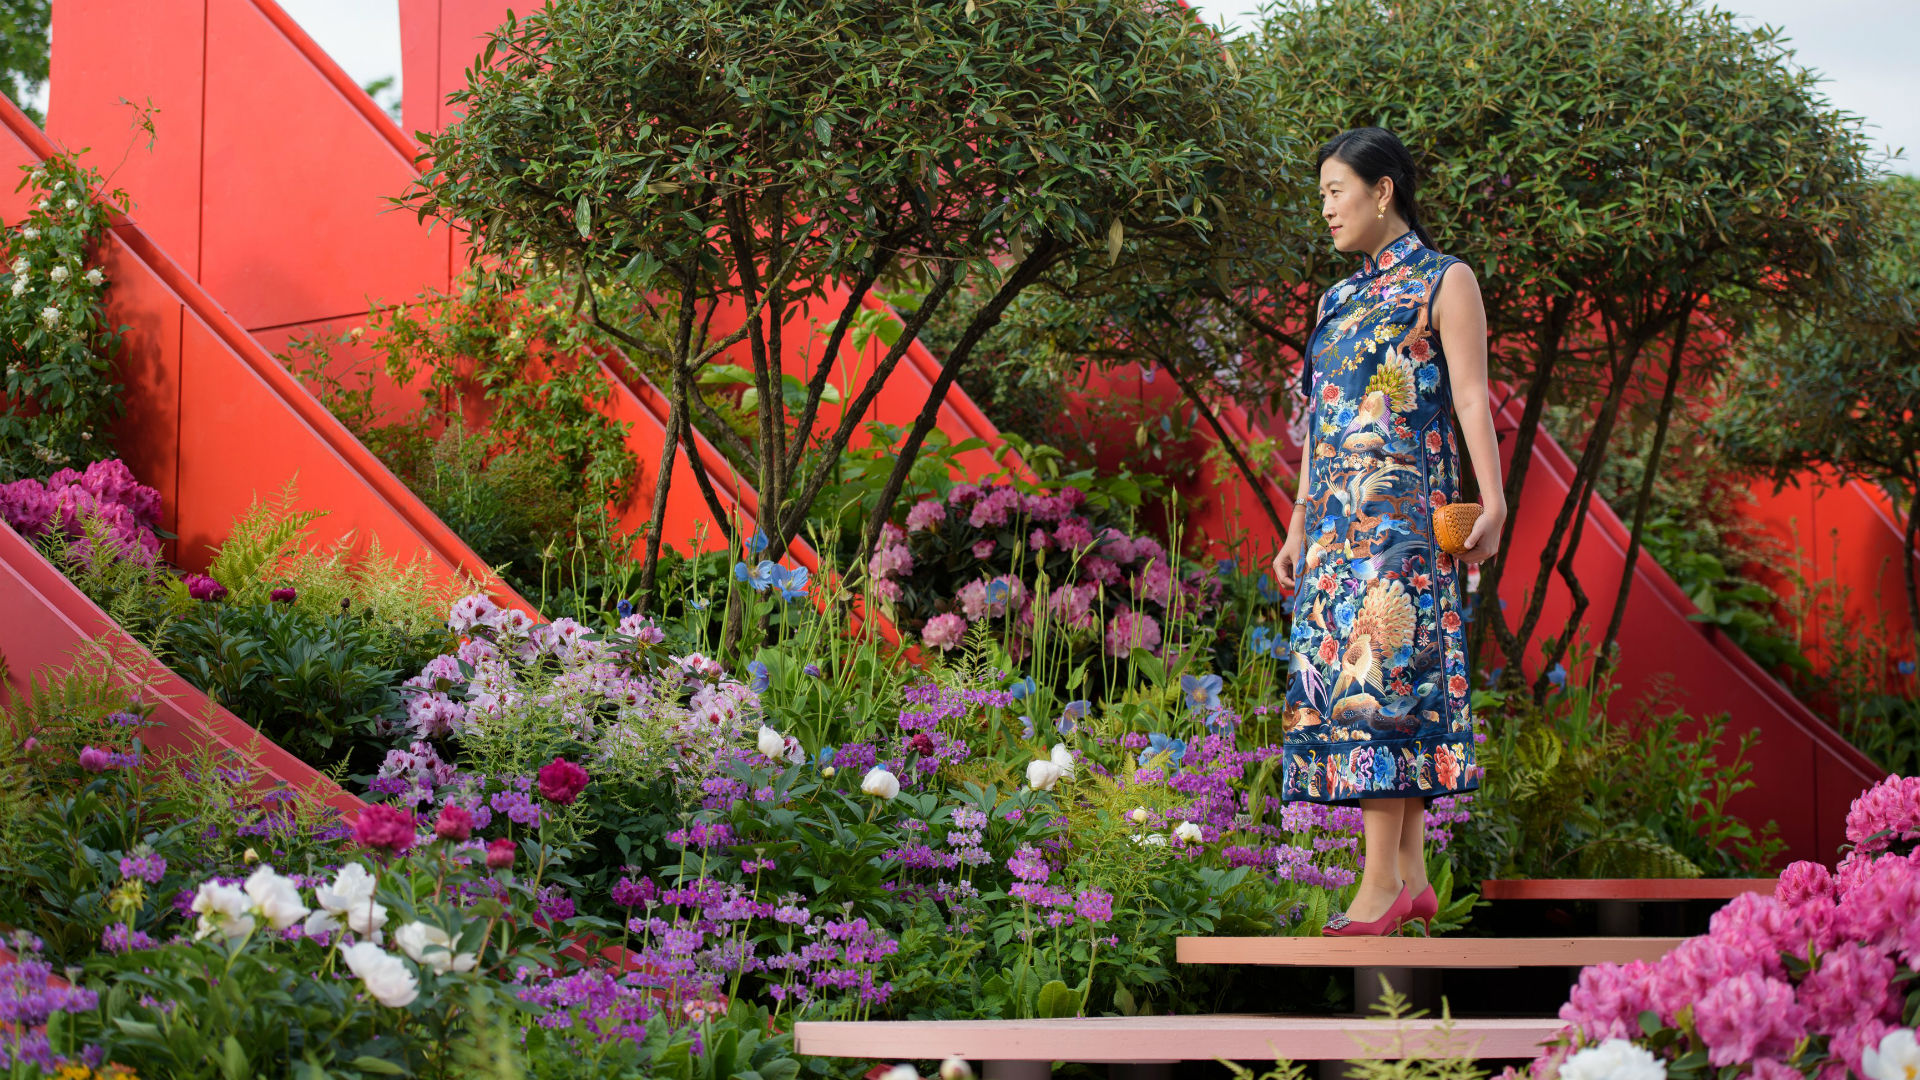 An invited guest steps onto The Silk Road Garden at RHS Chelsea Flower Show 2017.